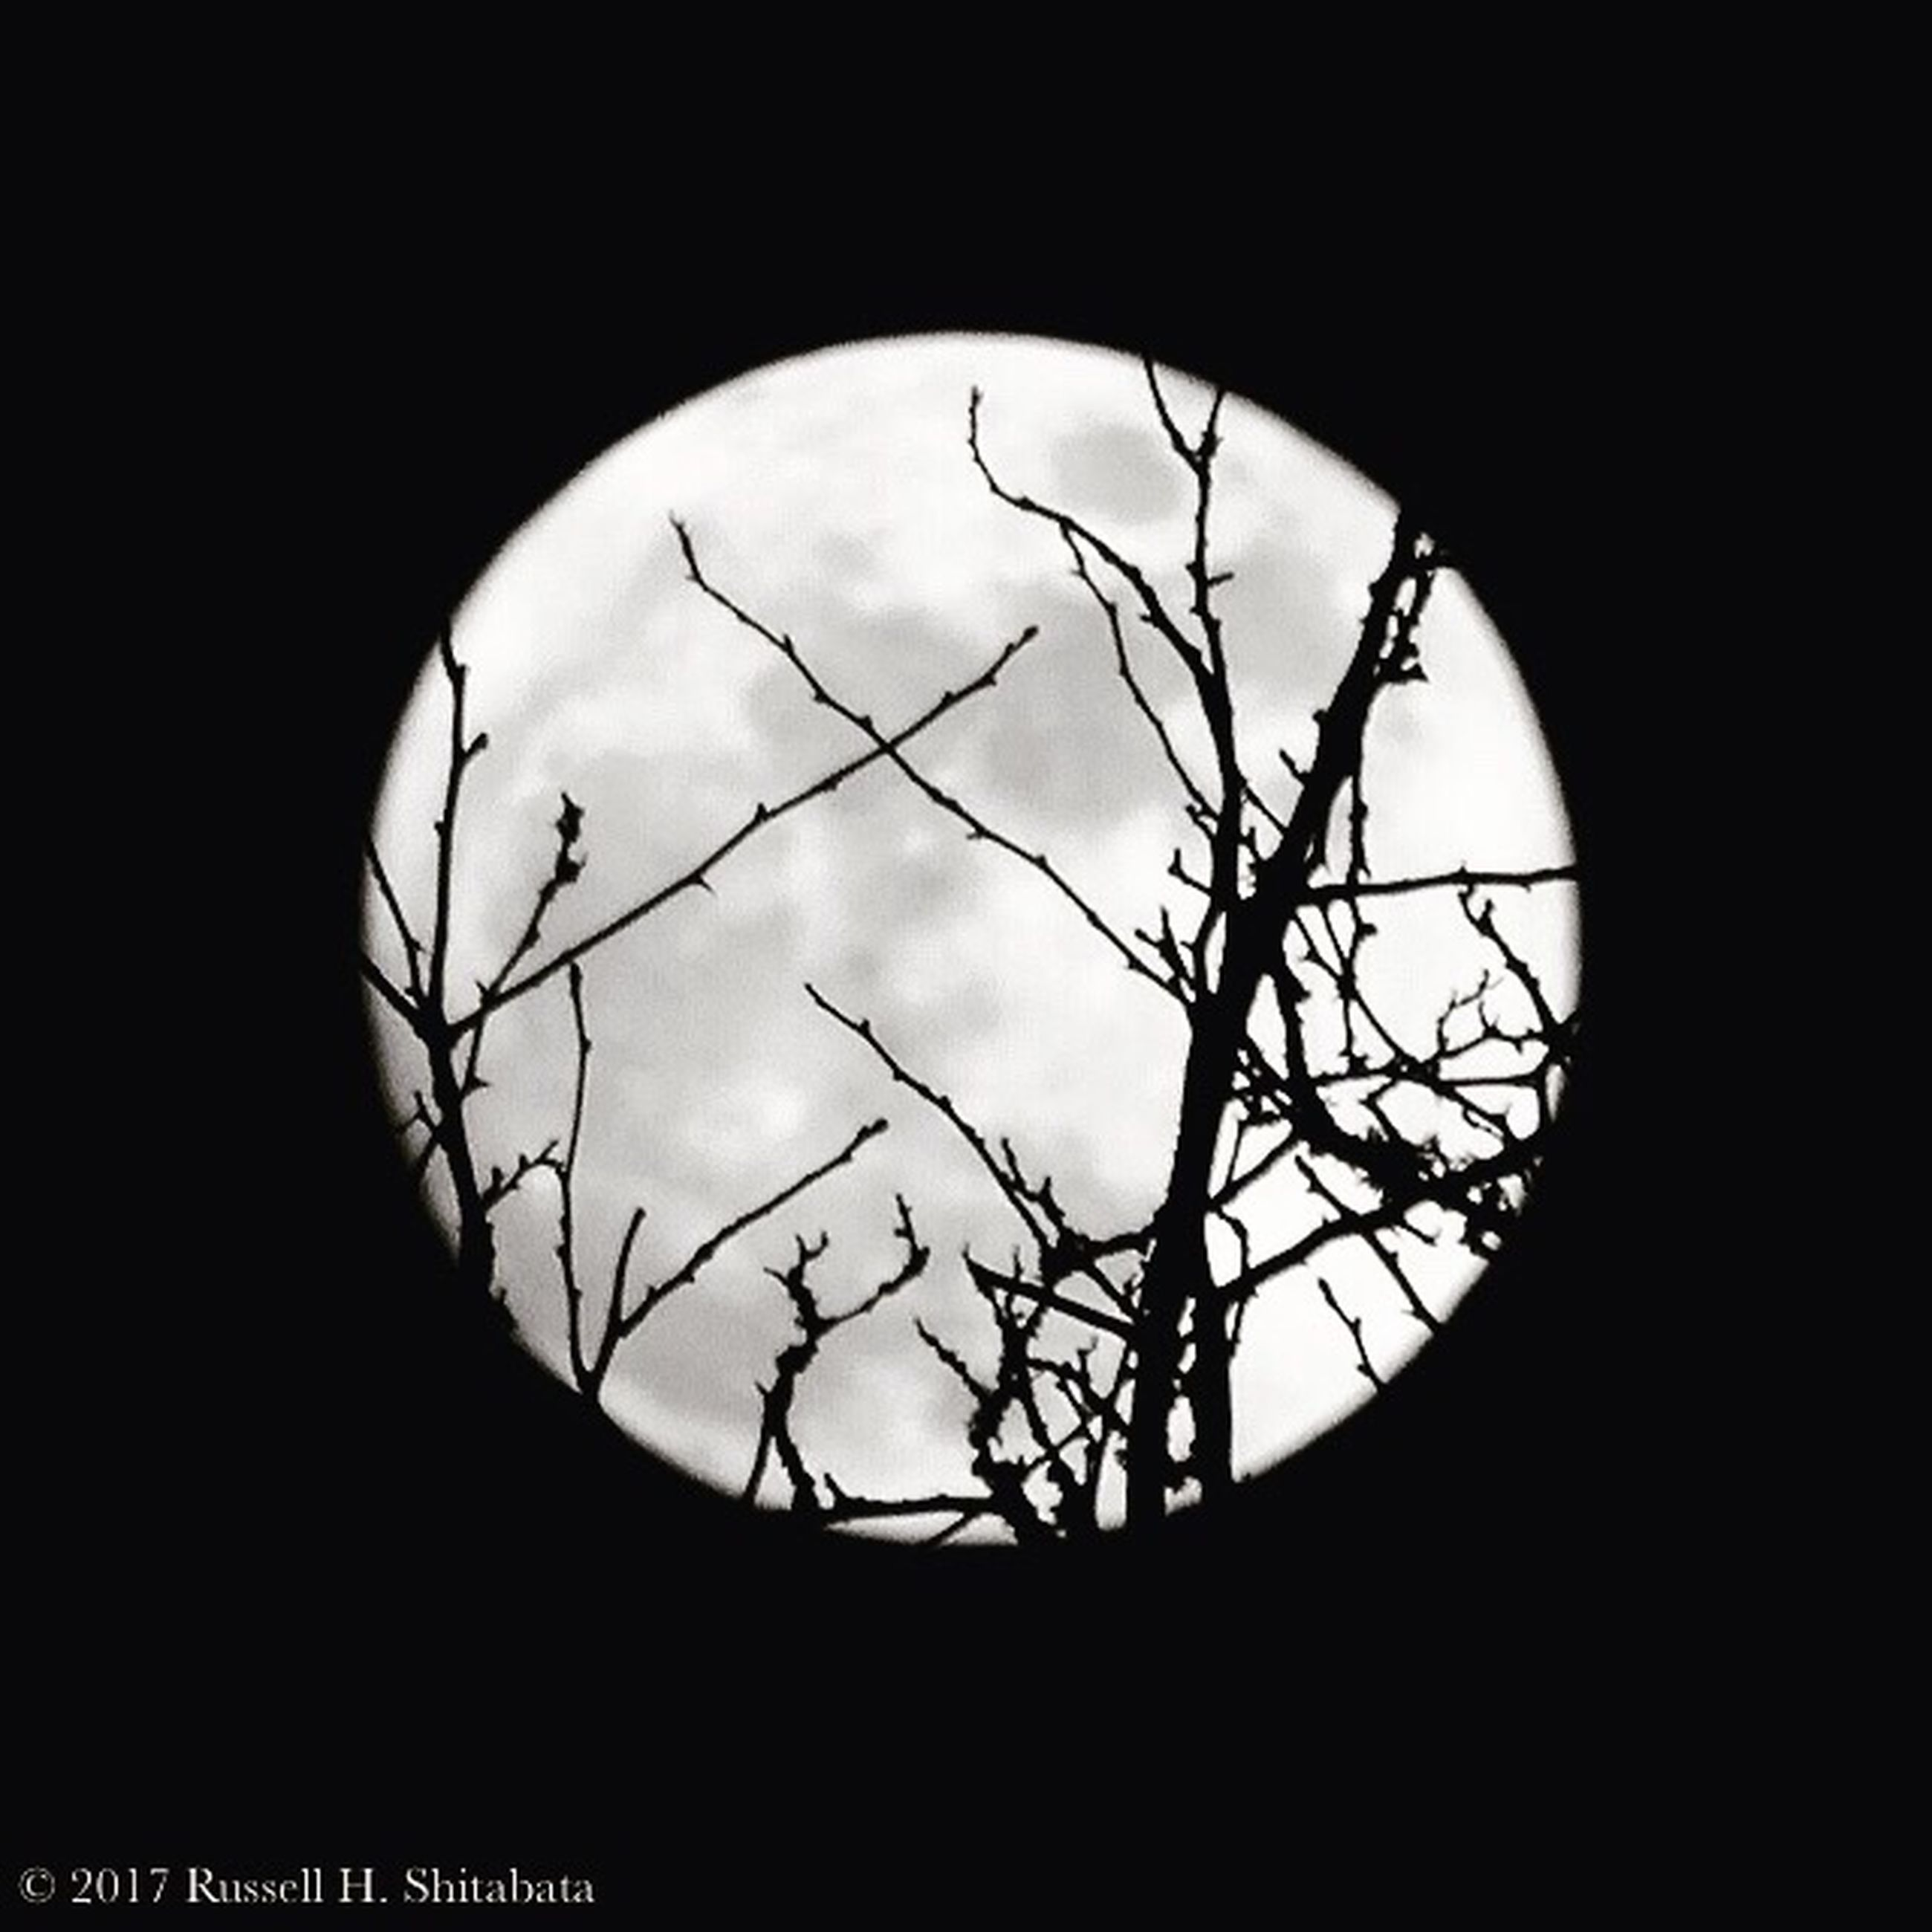 silhouette, no people, sky, low angle view, bare tree, cloud - sky, tree, moon, outdoors, day, close-up, nature